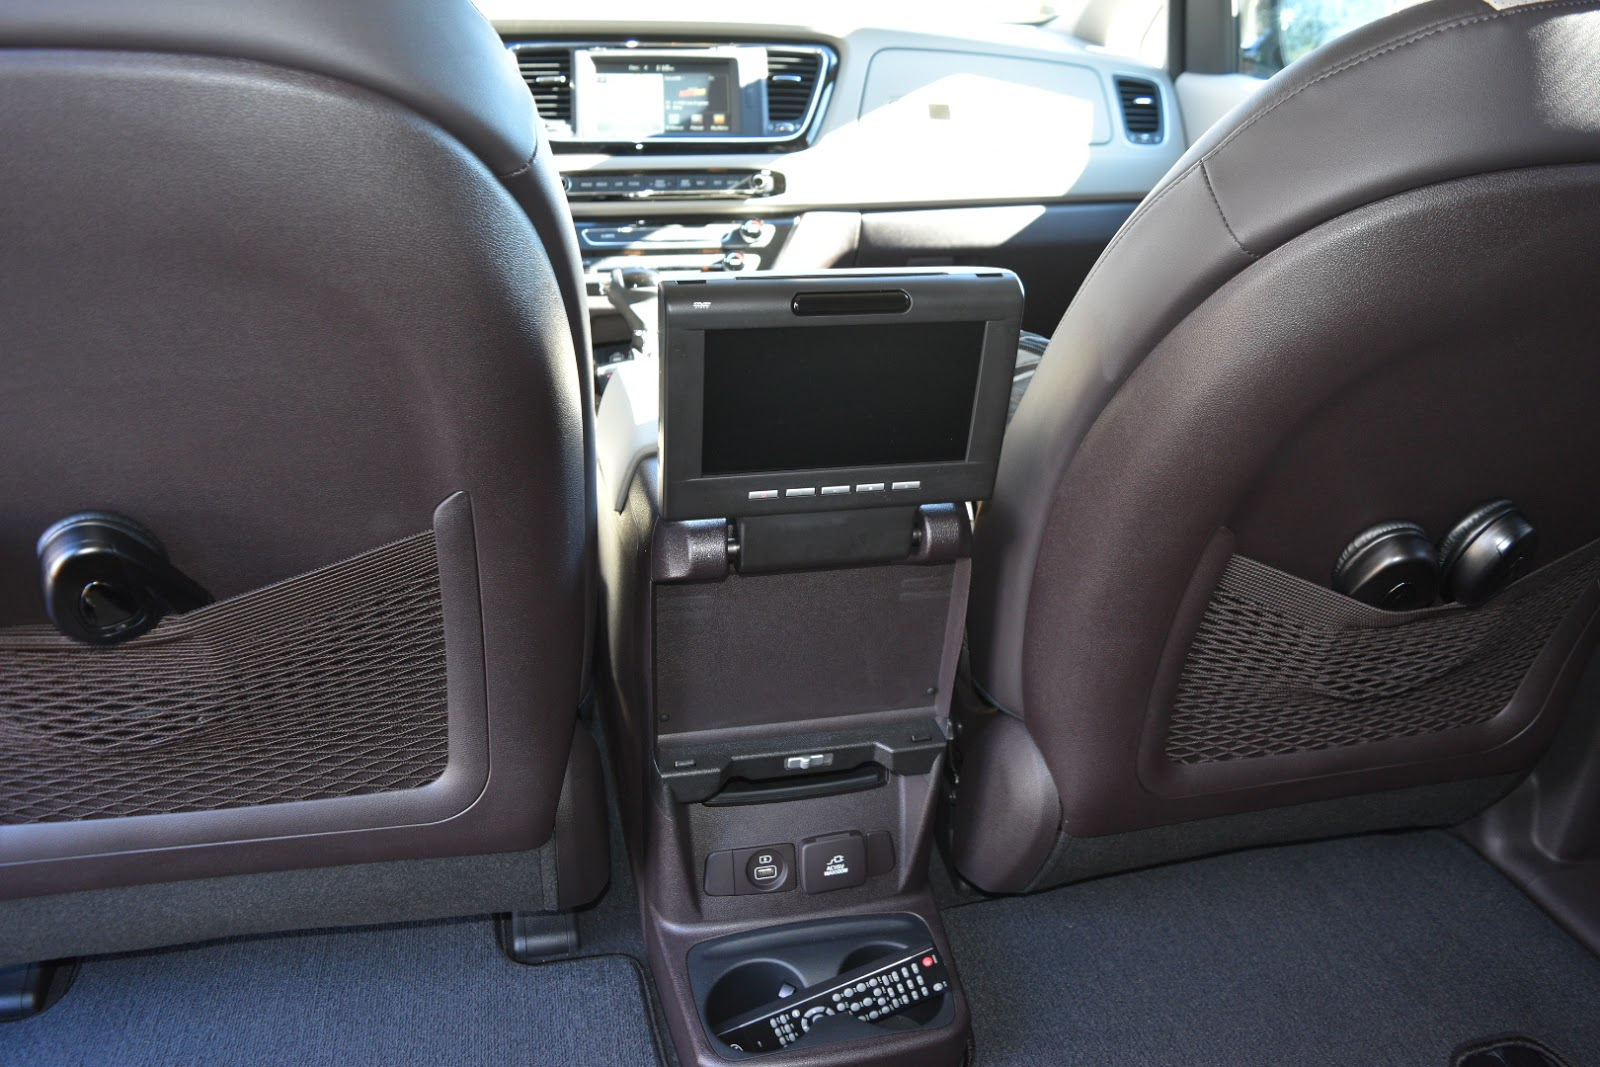 2016 kia sedona sxl review. Black Bedroom Furniture Sets. Home Design Ideas